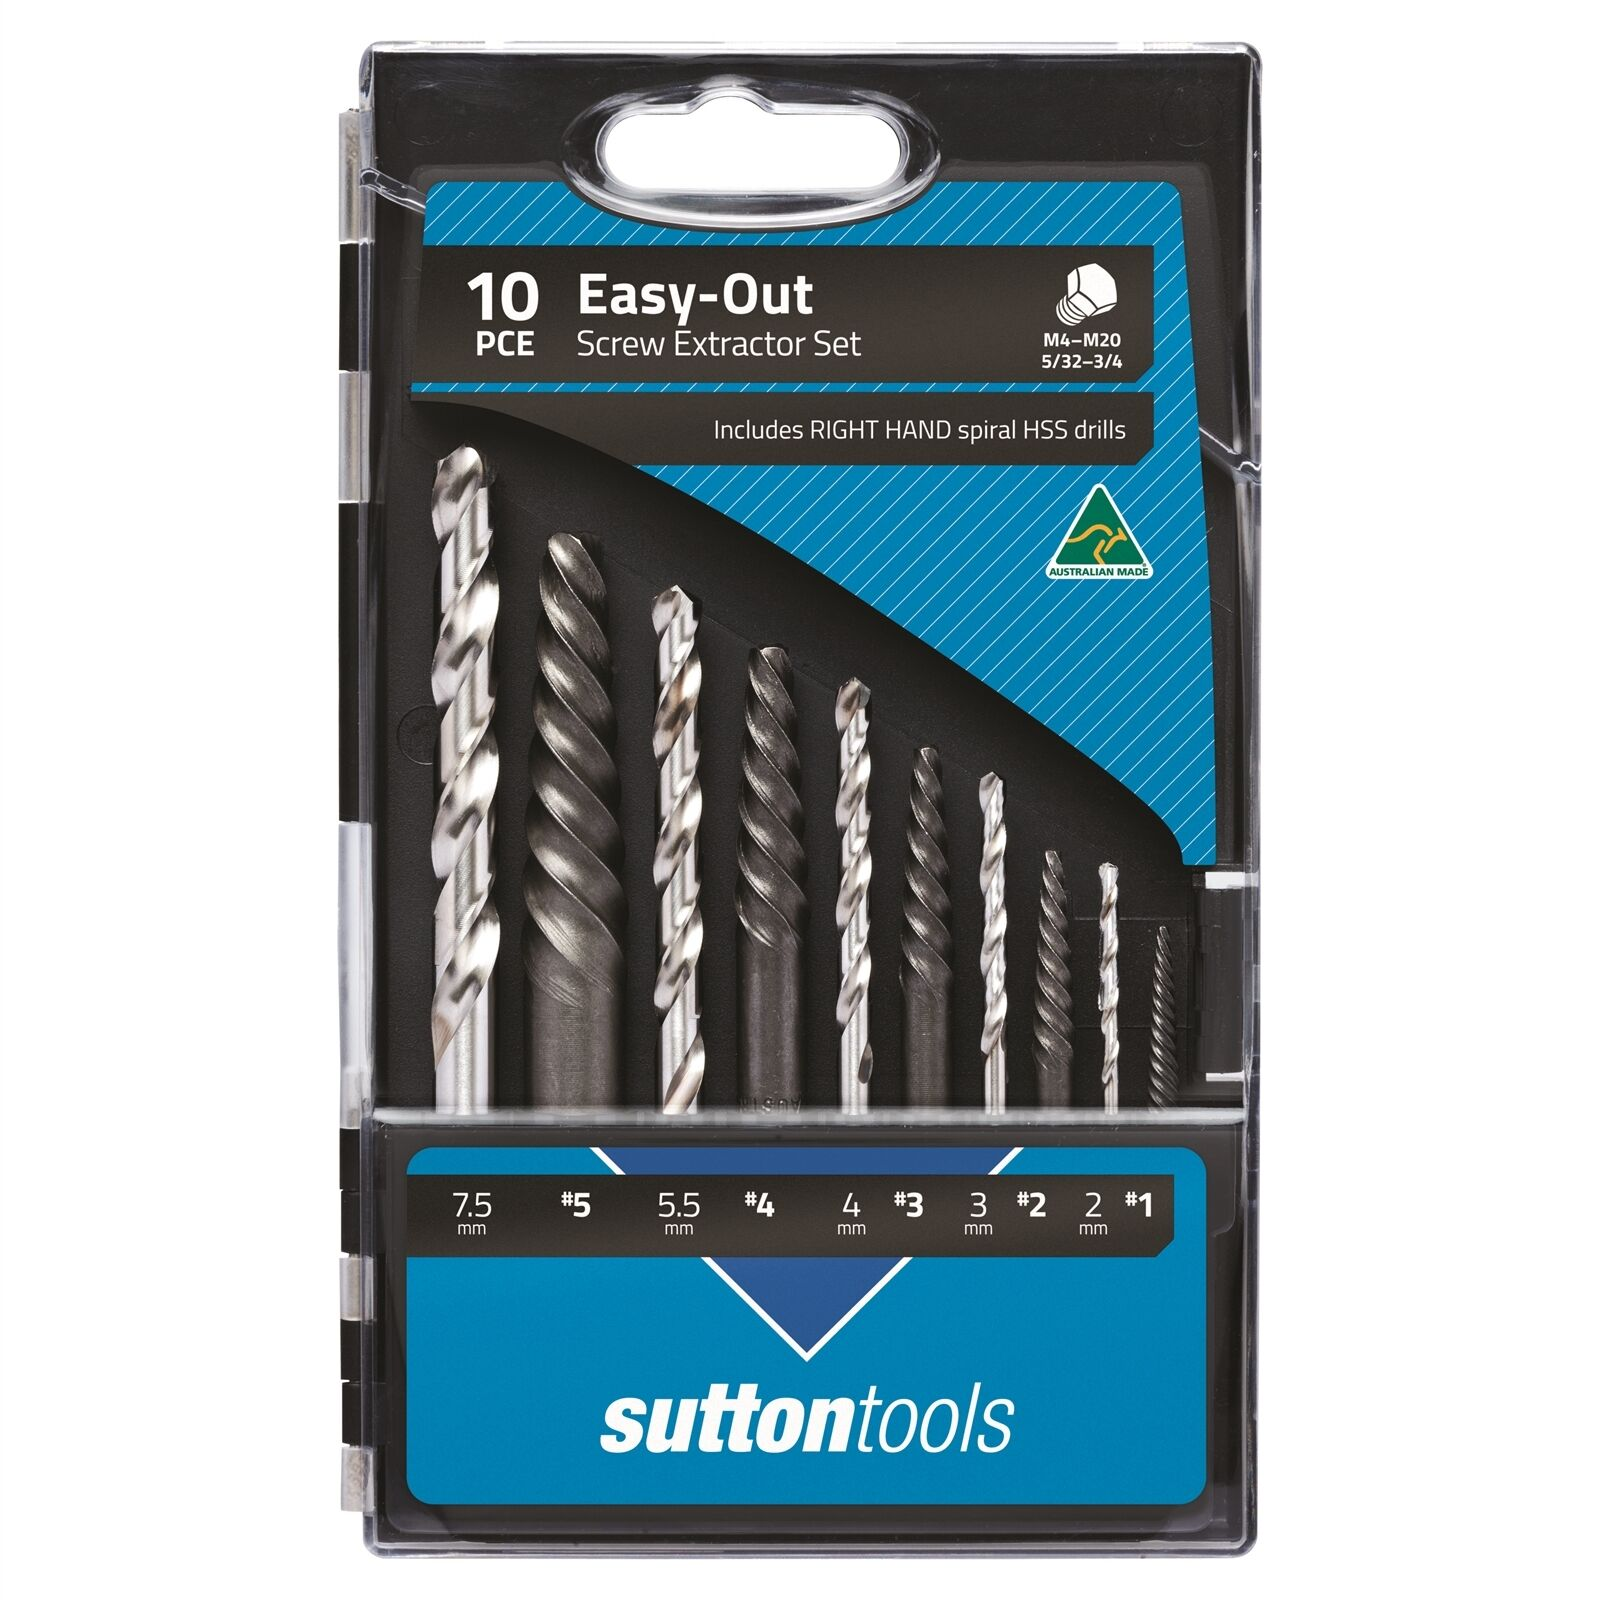 Sutton Tools SCREW SCREW SCREW EXTRACTOR SET 10Pcs Square End,Extragripping Power AUS Made 3ef214